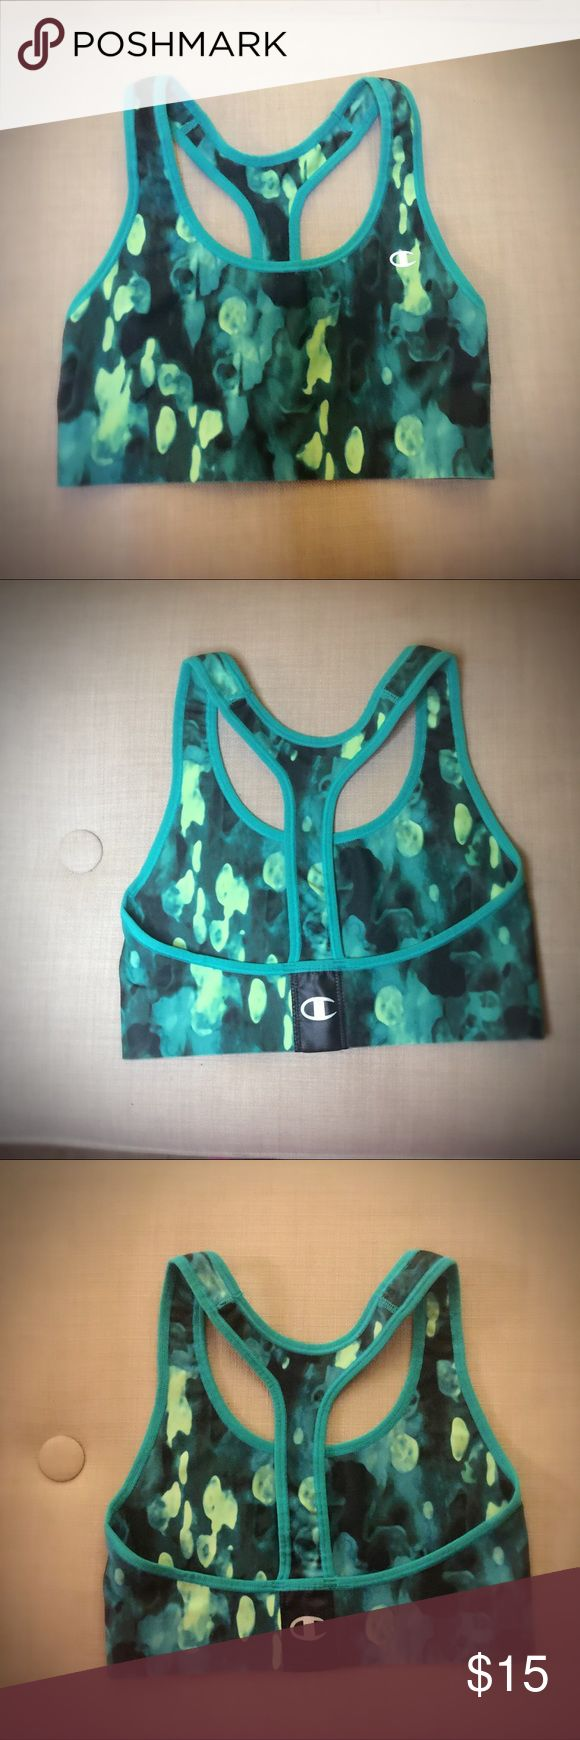 Champion Sports Bra Top Neon Greens Print Small Champion Sports Bra Top in Neon Greens Print, Size Small.  Very nice quality! Compression type fabric, very supportive but soft.  Bright shades of green mixed with forest green shades.  Worn once but sadly it was a little tight on me. Champion Intimates & Sleepwear Bras